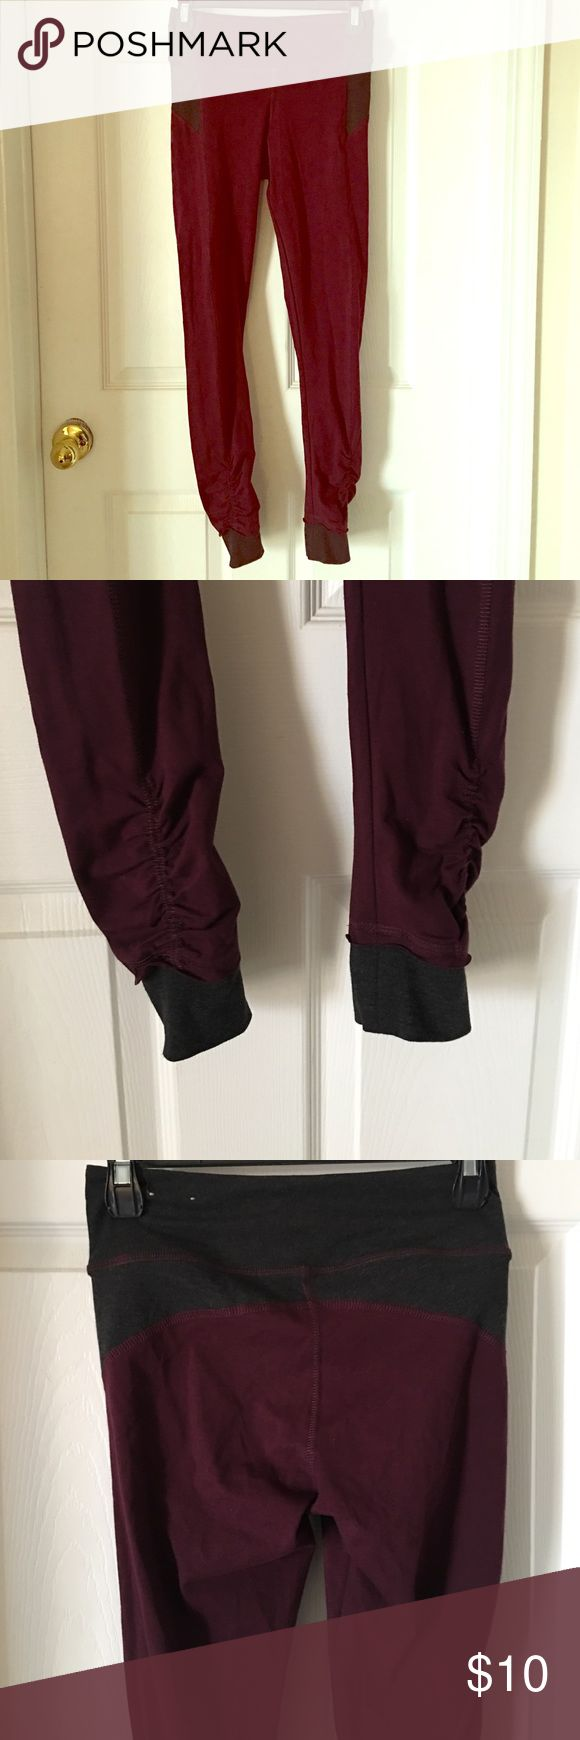 American Eagle maroon and charcoal leggings Size small. Maroon and charcoal leggings. Never worn. American Eagle Outfitters Pants